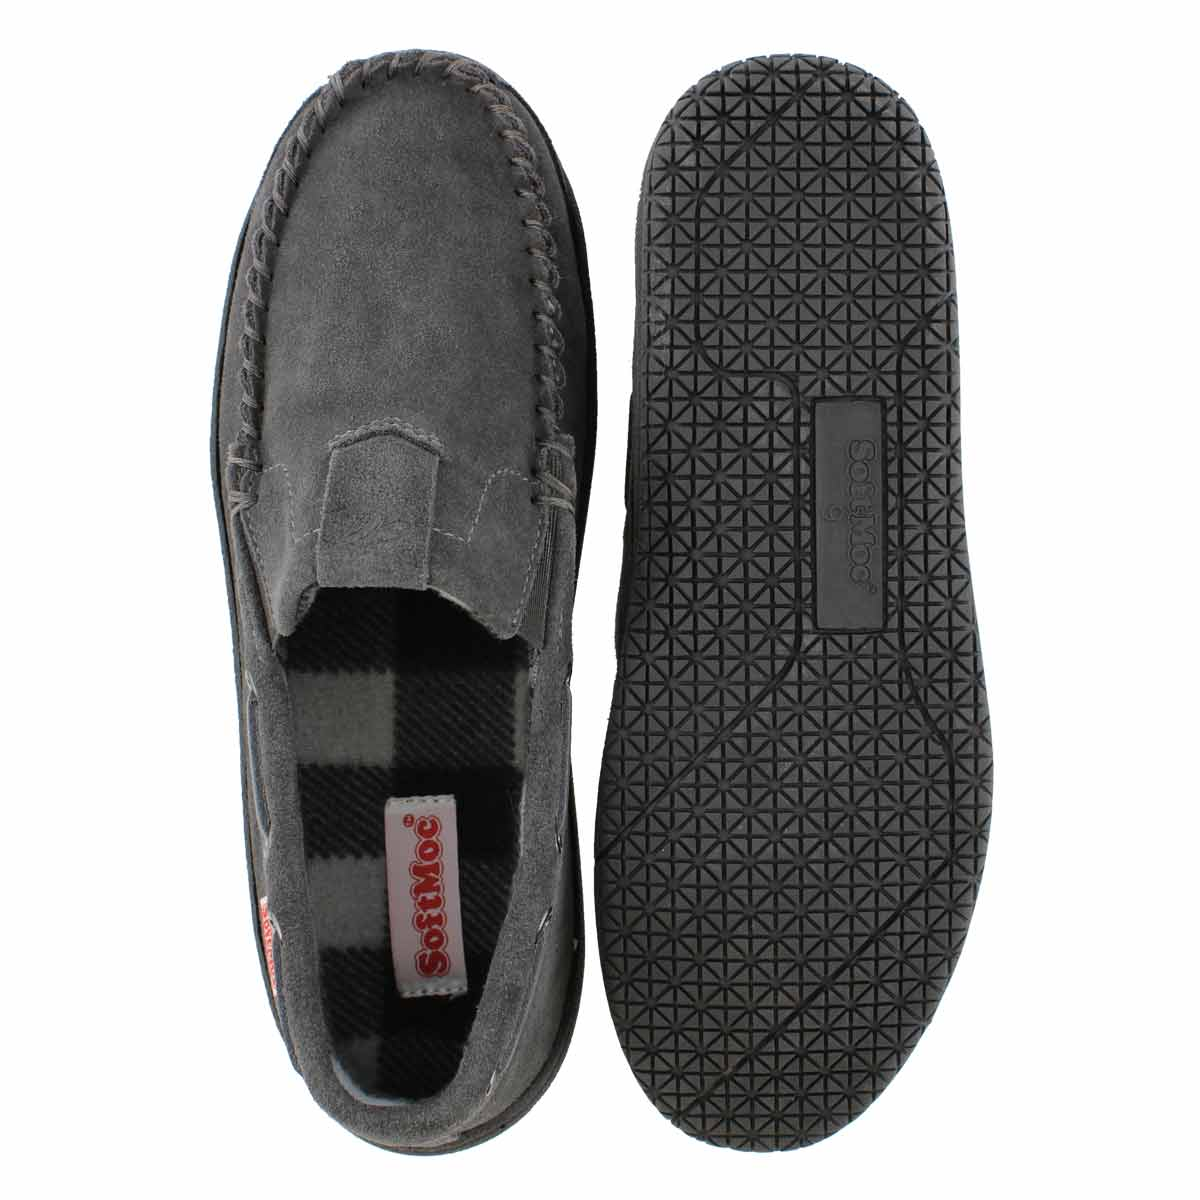 Mns Darian charcoal suede moccasin